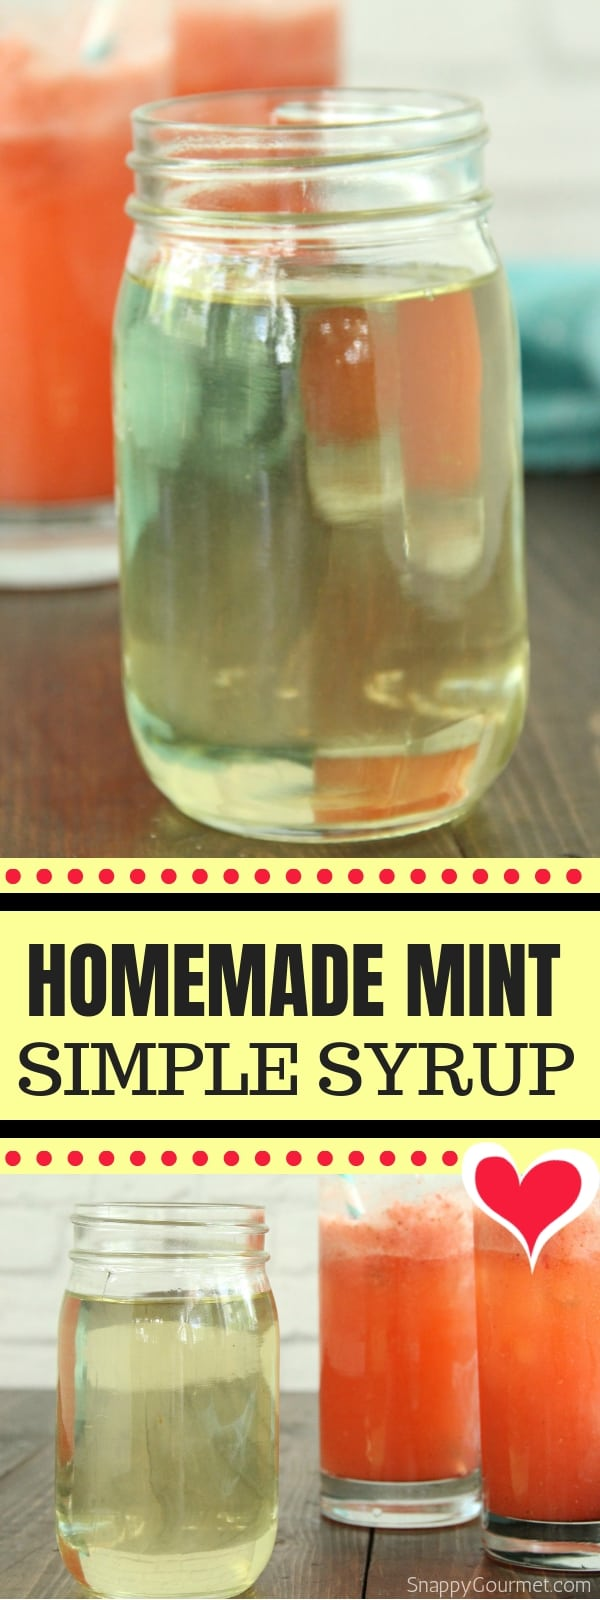 Mint Simple Syrup photo collage